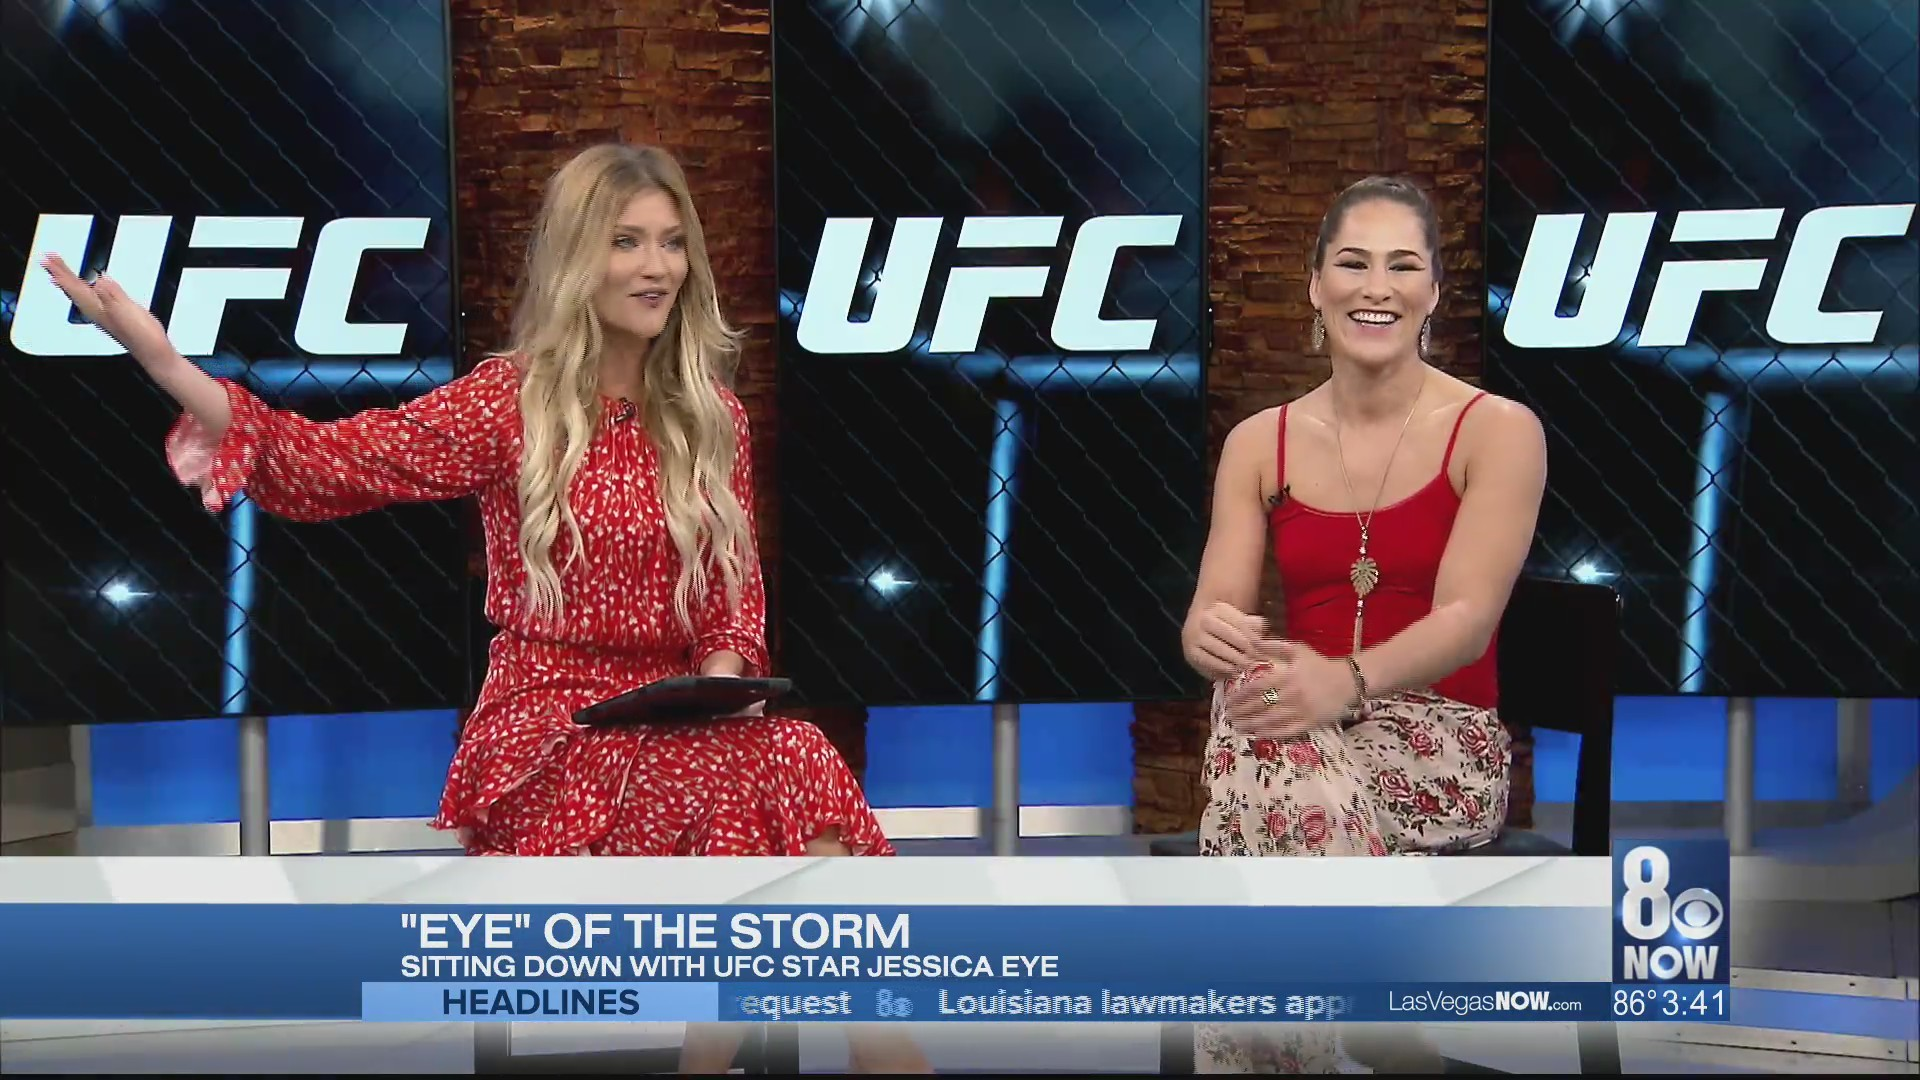 #1 ranked UFC fighter Jessica Eye visits Las Vegas Now